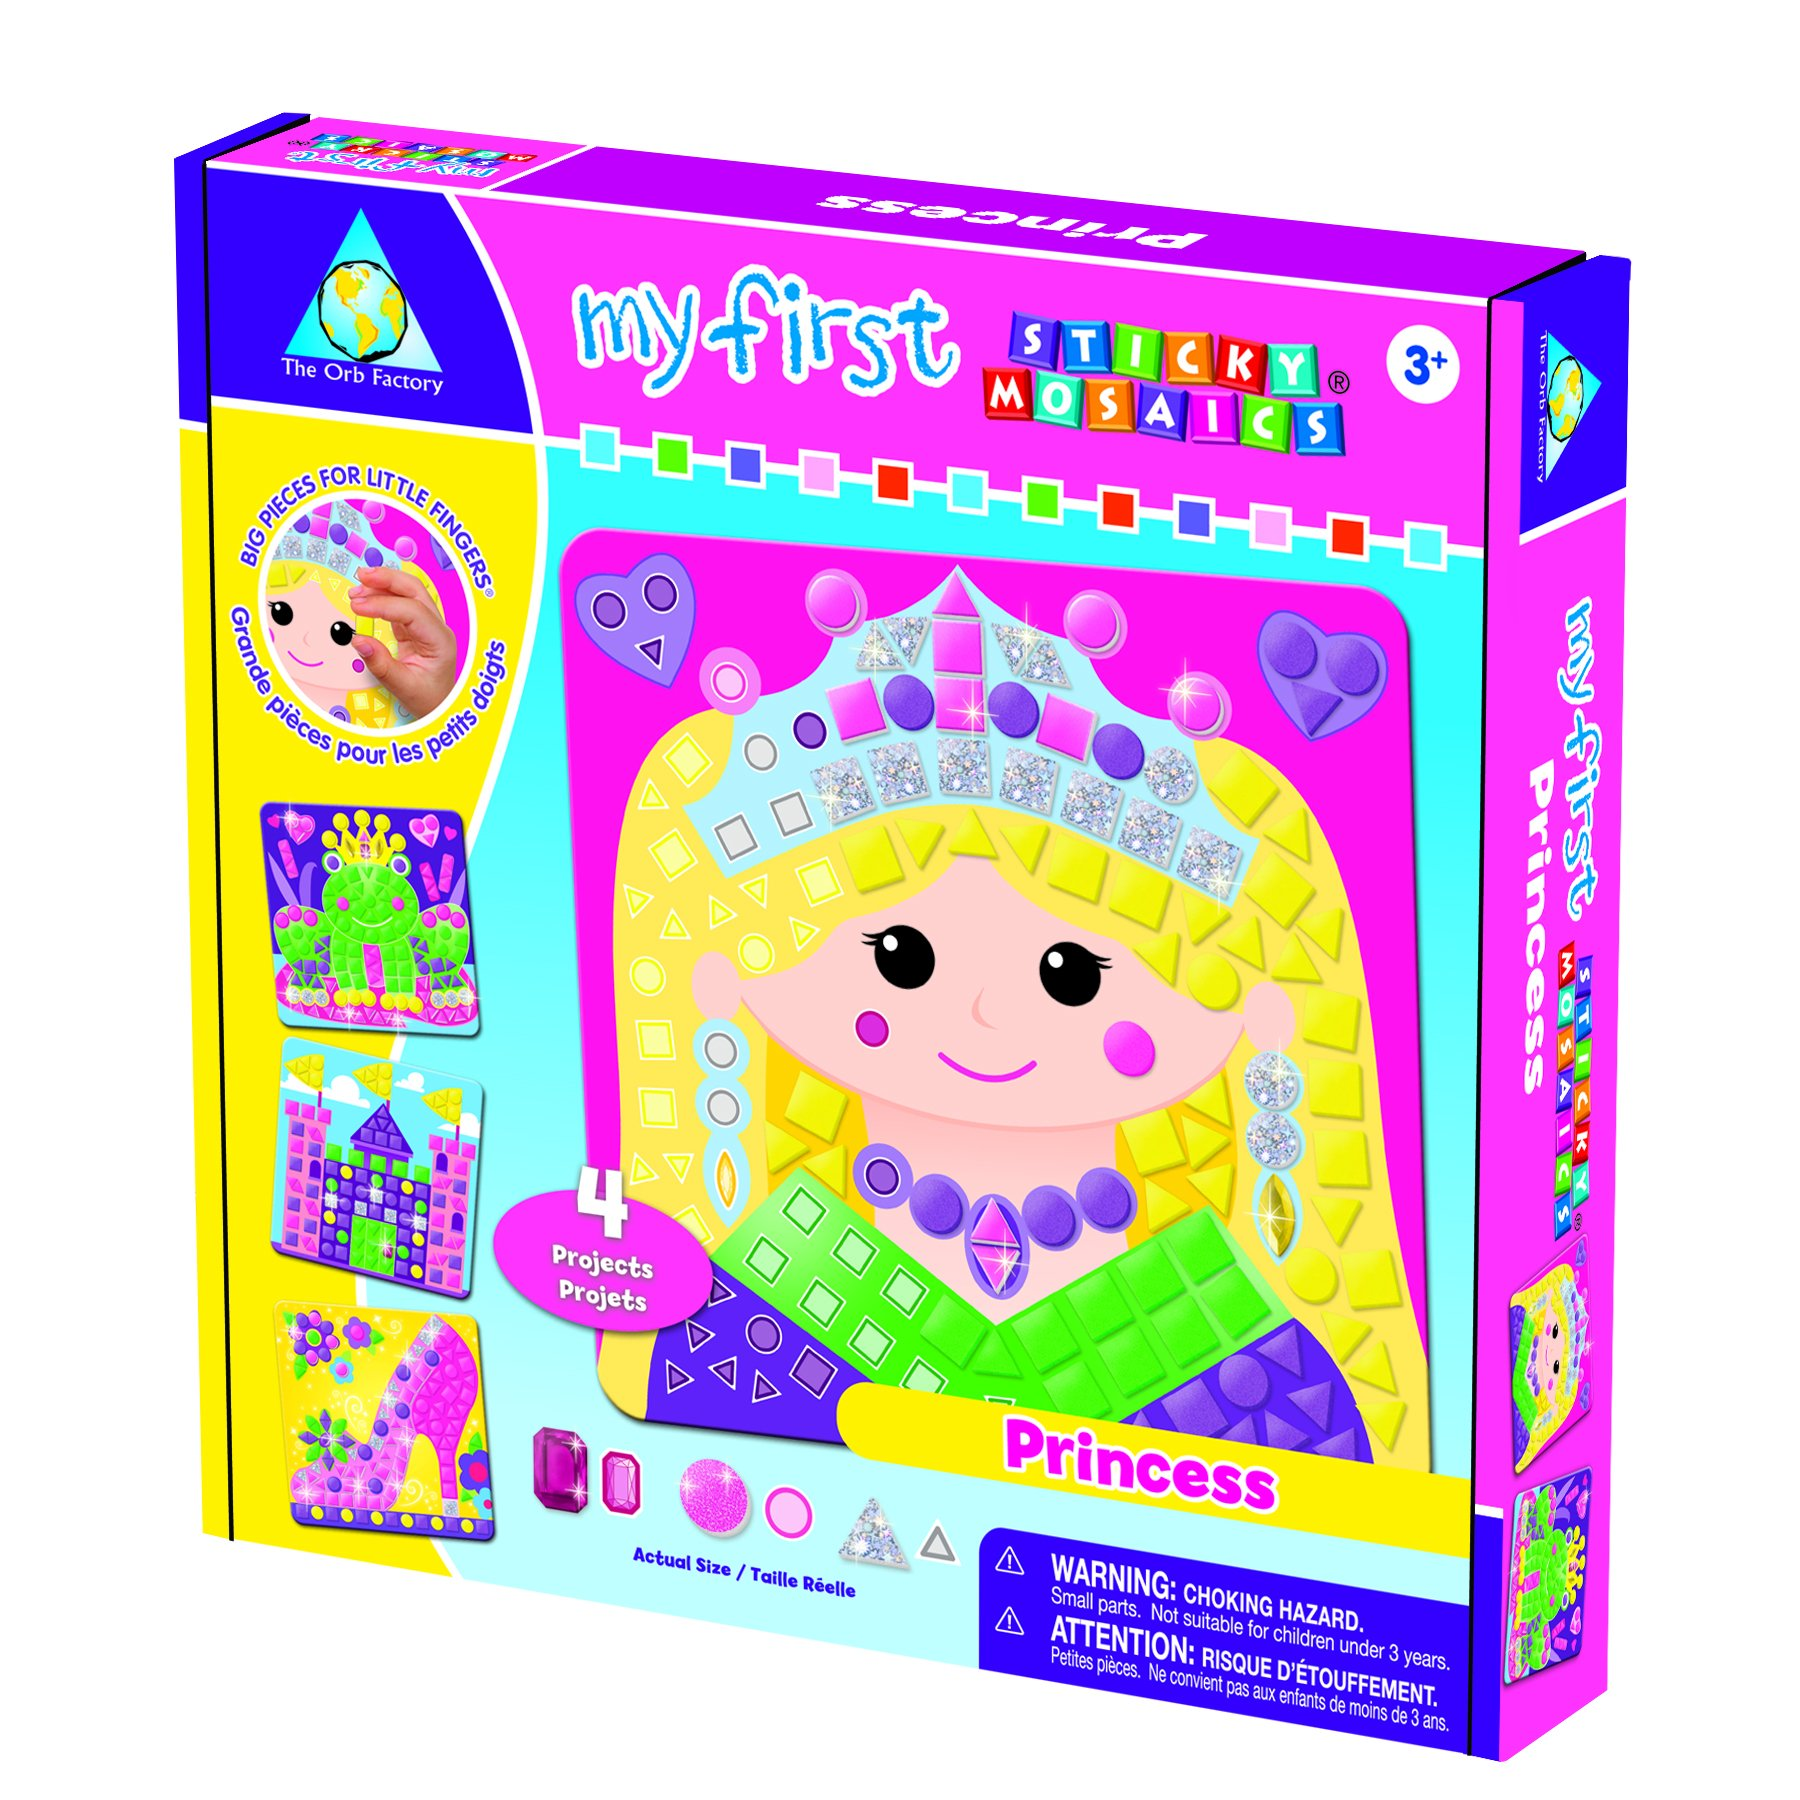 The Orb Factory My First Sticky Mosaics Princess